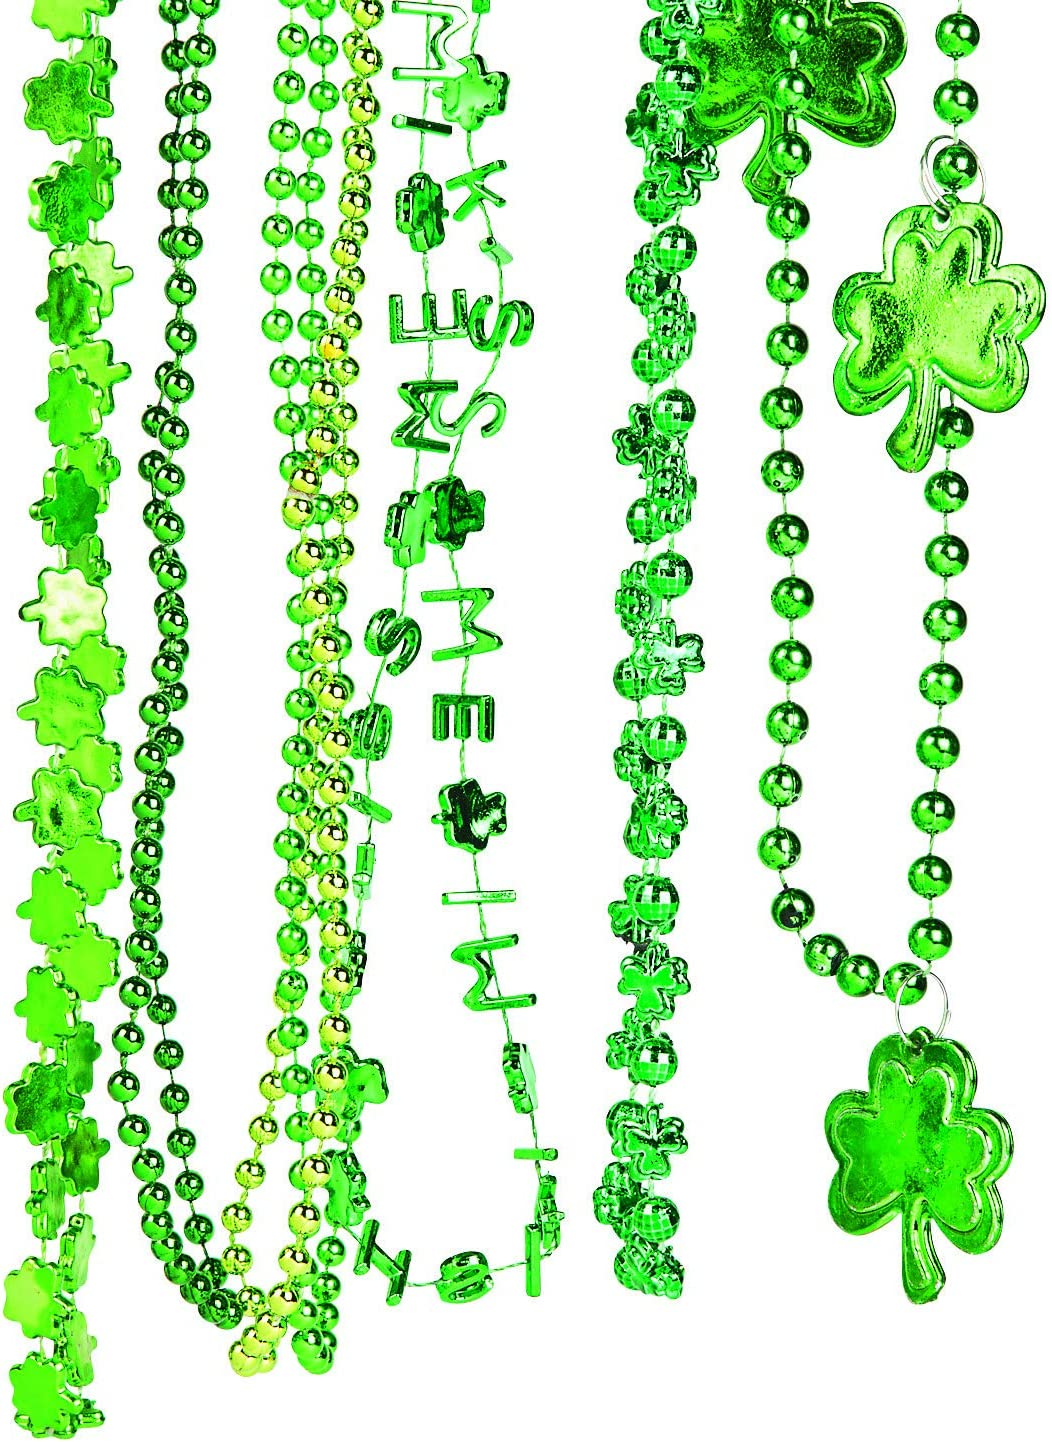 Bulk Pack of 72 St Costume Accessory Supplies Great for Party Favor Necklaces By 4E/'s Novelty Patricks Day Colorful Shamrock Beads Necklace ASSORTMENT Shamrock and Green Beads 33 Long 7mm Thick